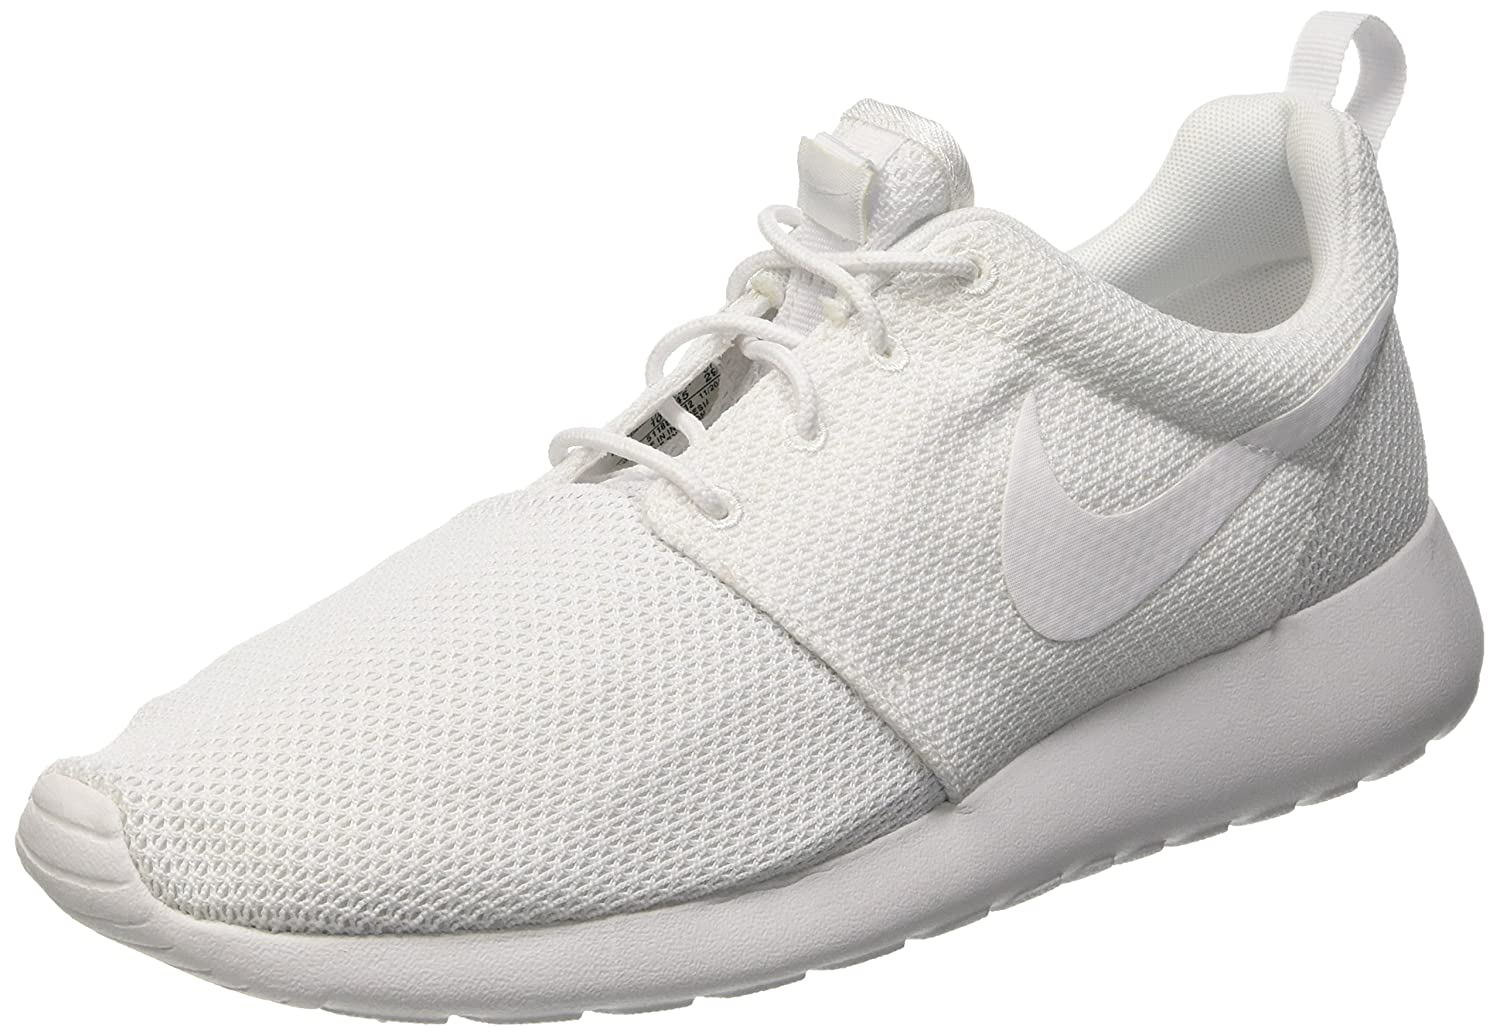 uk availability dbcbc 53752 Nike Men's Rosherun Running Shoe 9.5 White